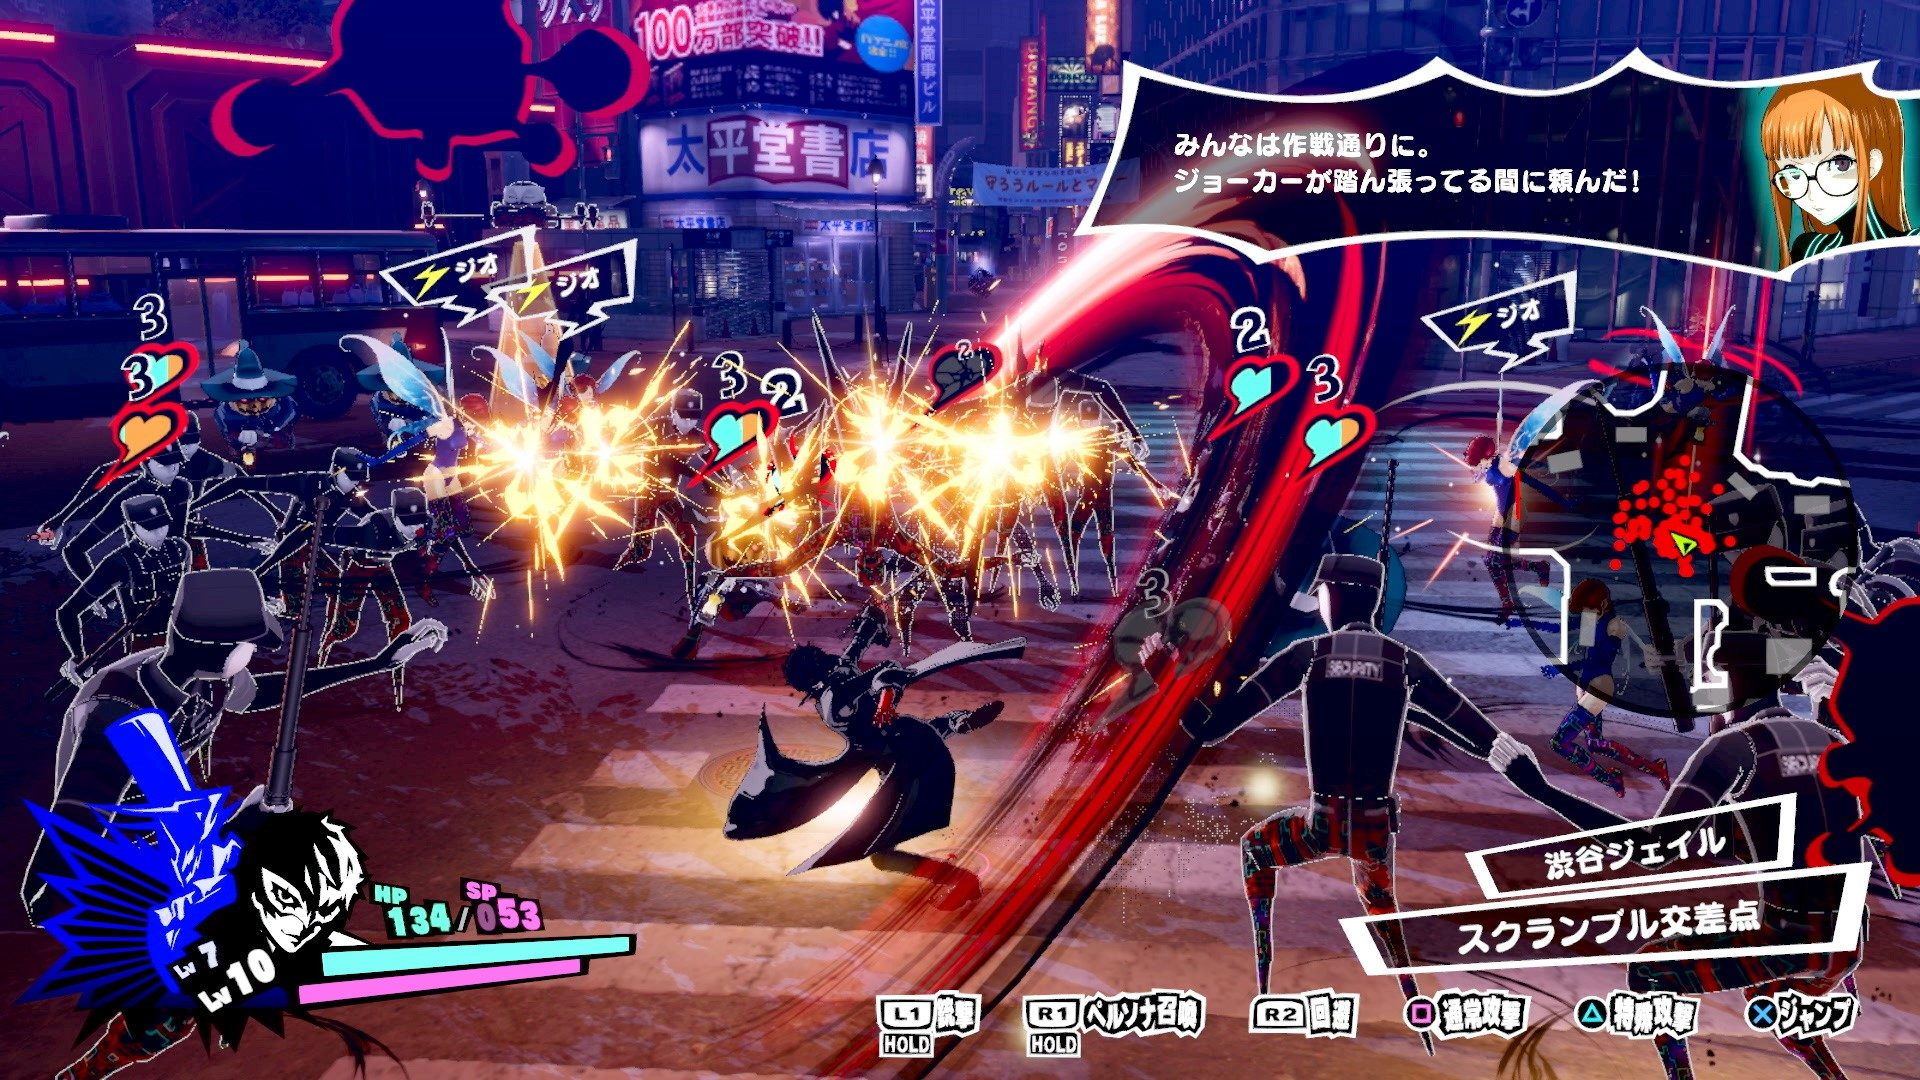 Persona 5 Scramble occidente